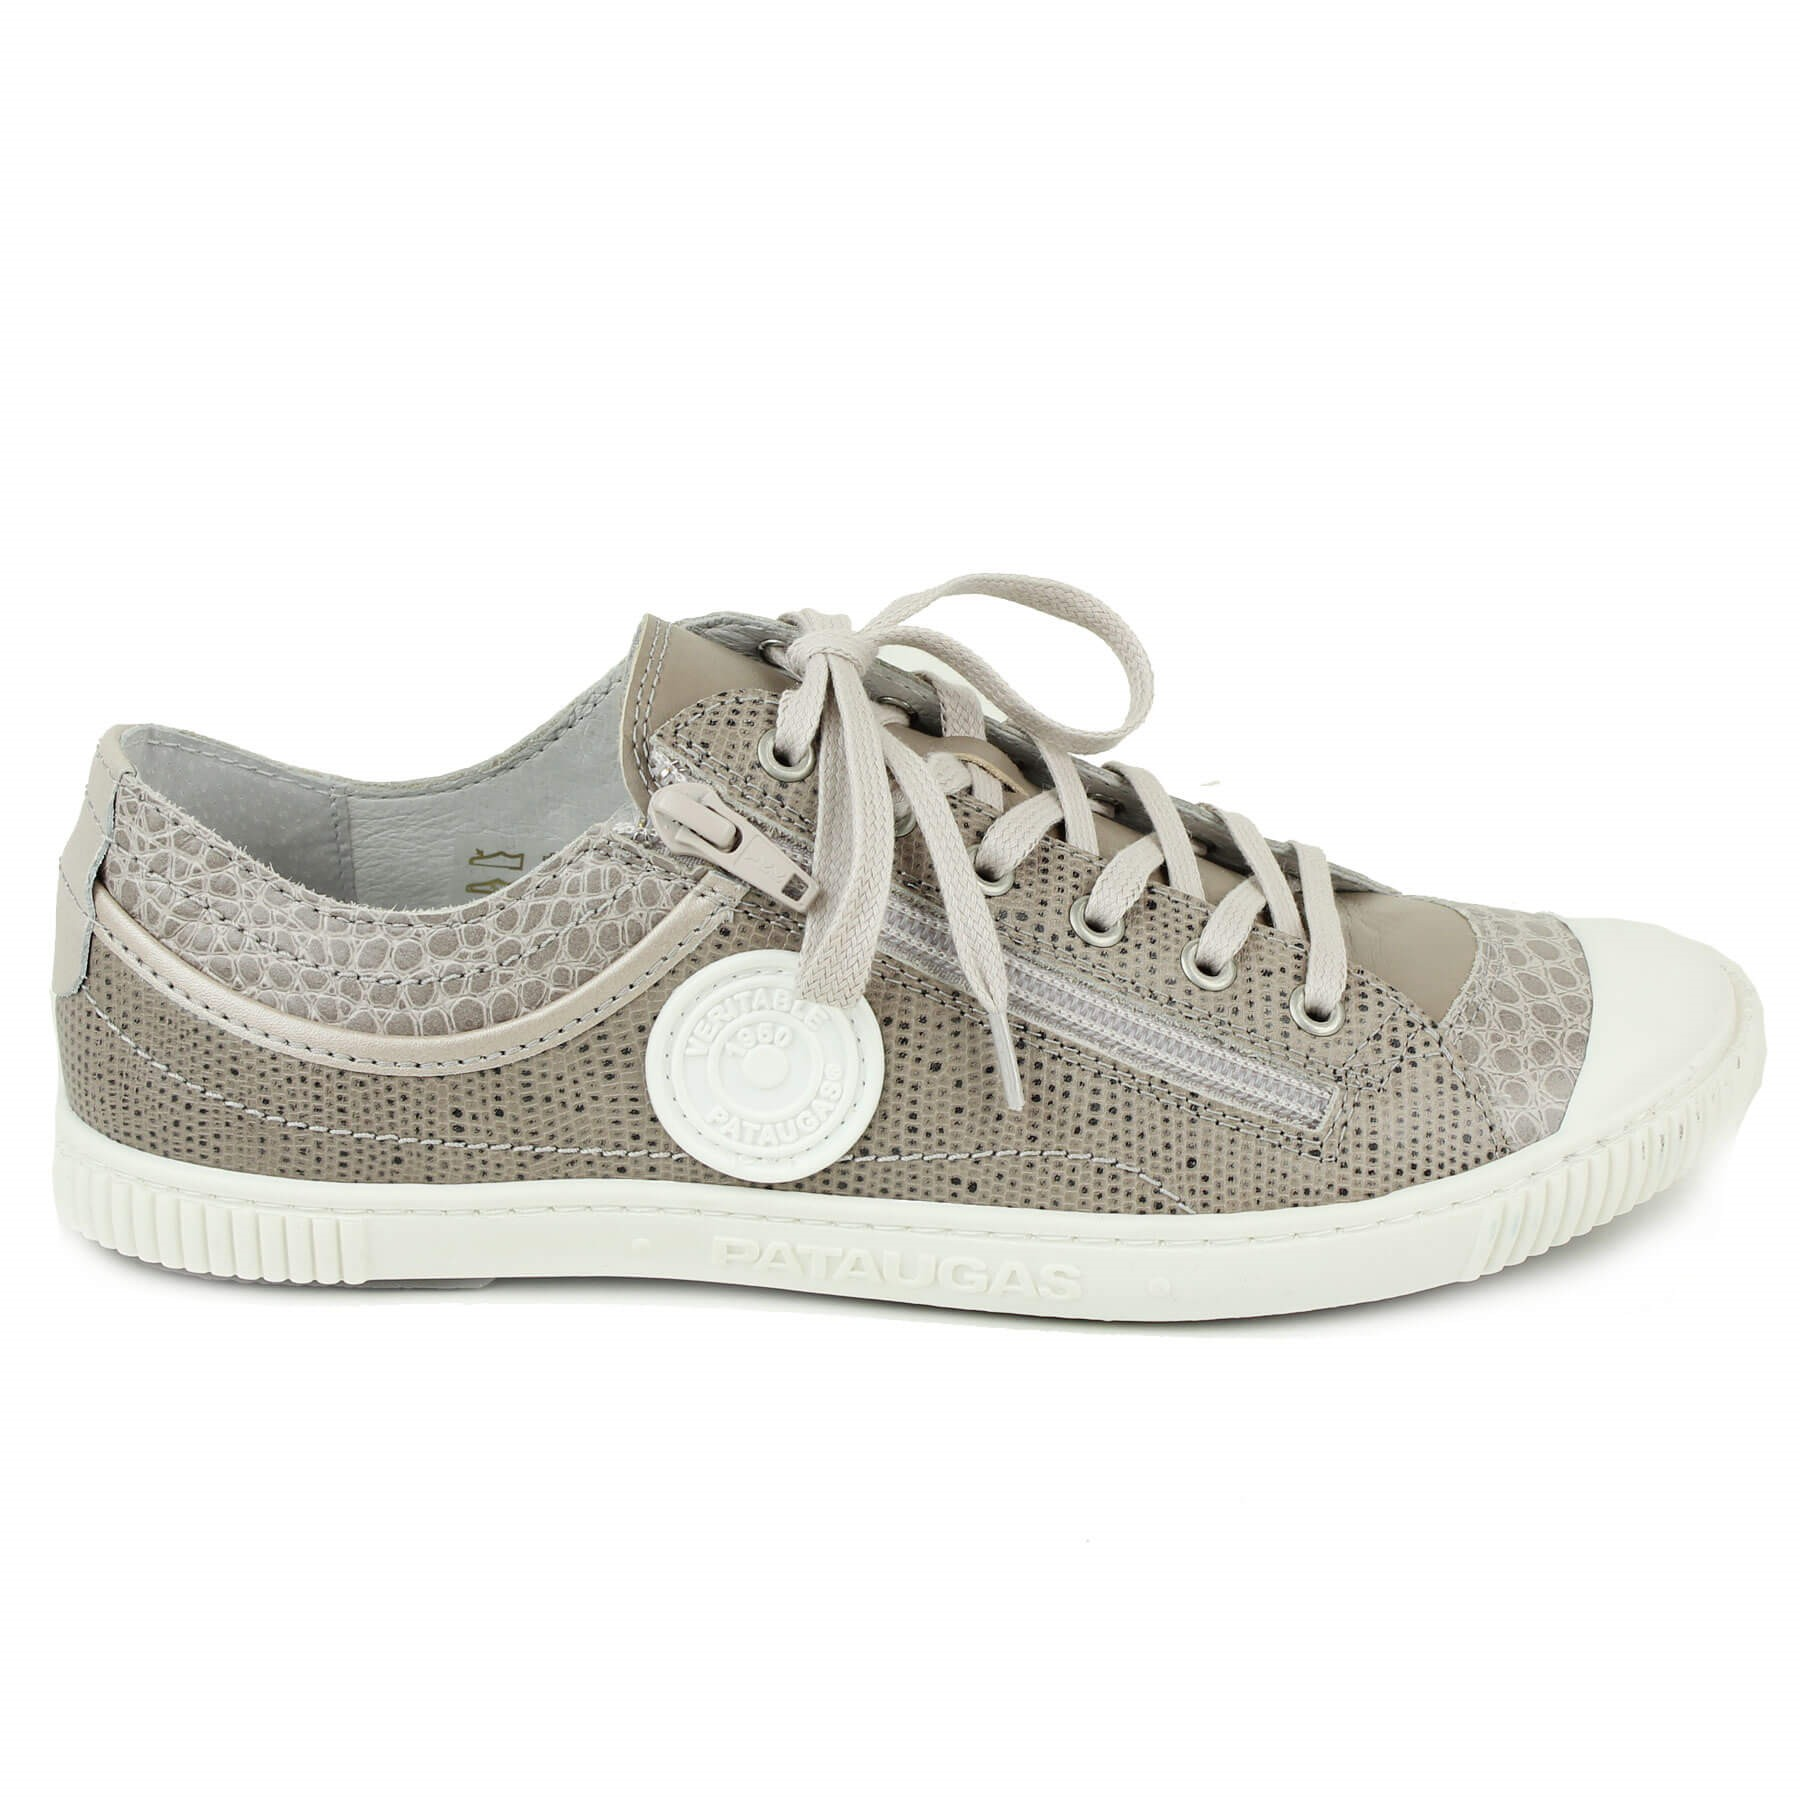 Sneakers femme taupe